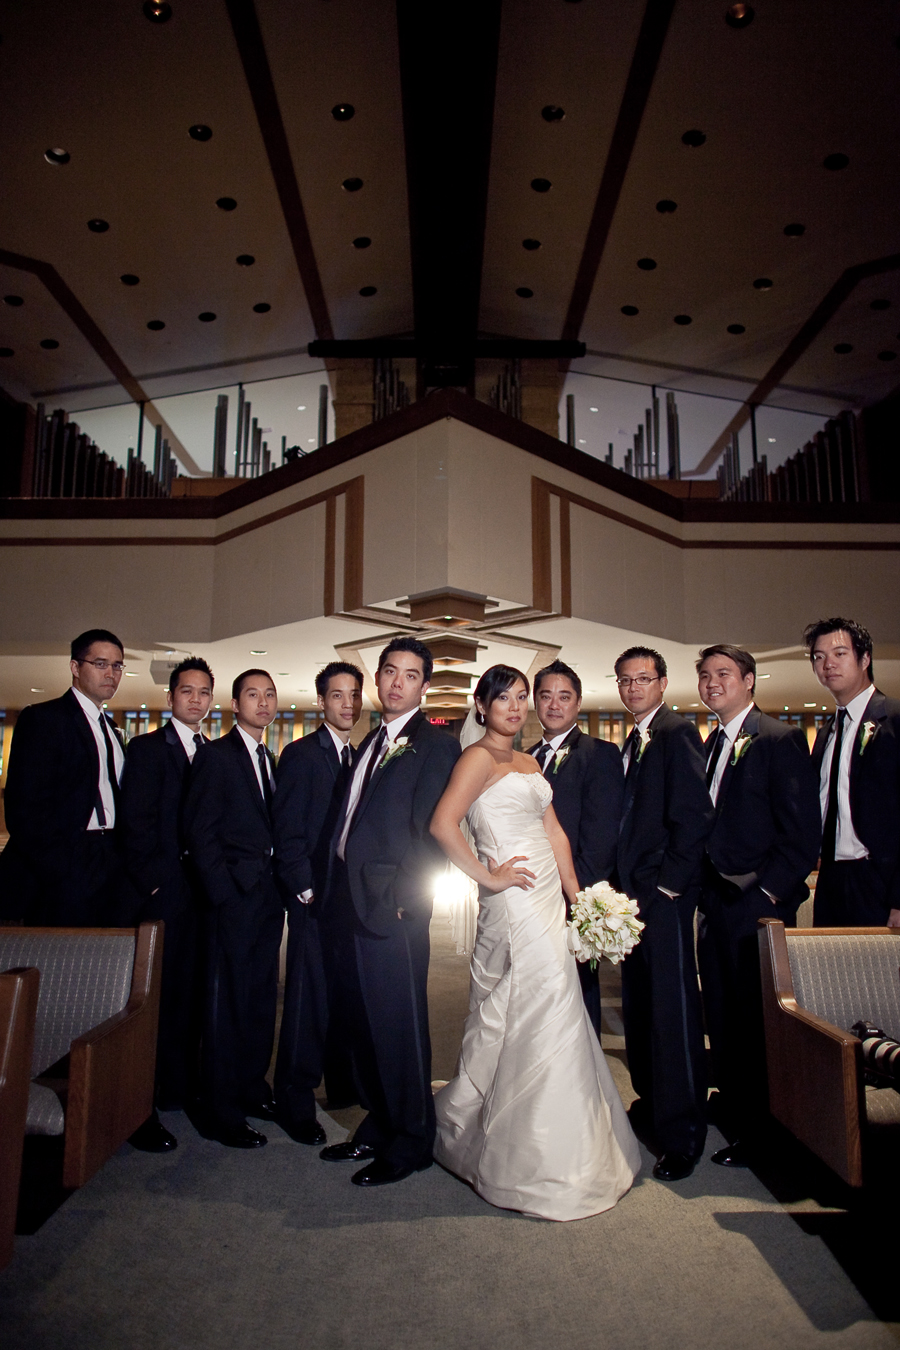 Simple Modern Wedding at Memorial Drive Presbyterian Church Houston Texas photographed by table4